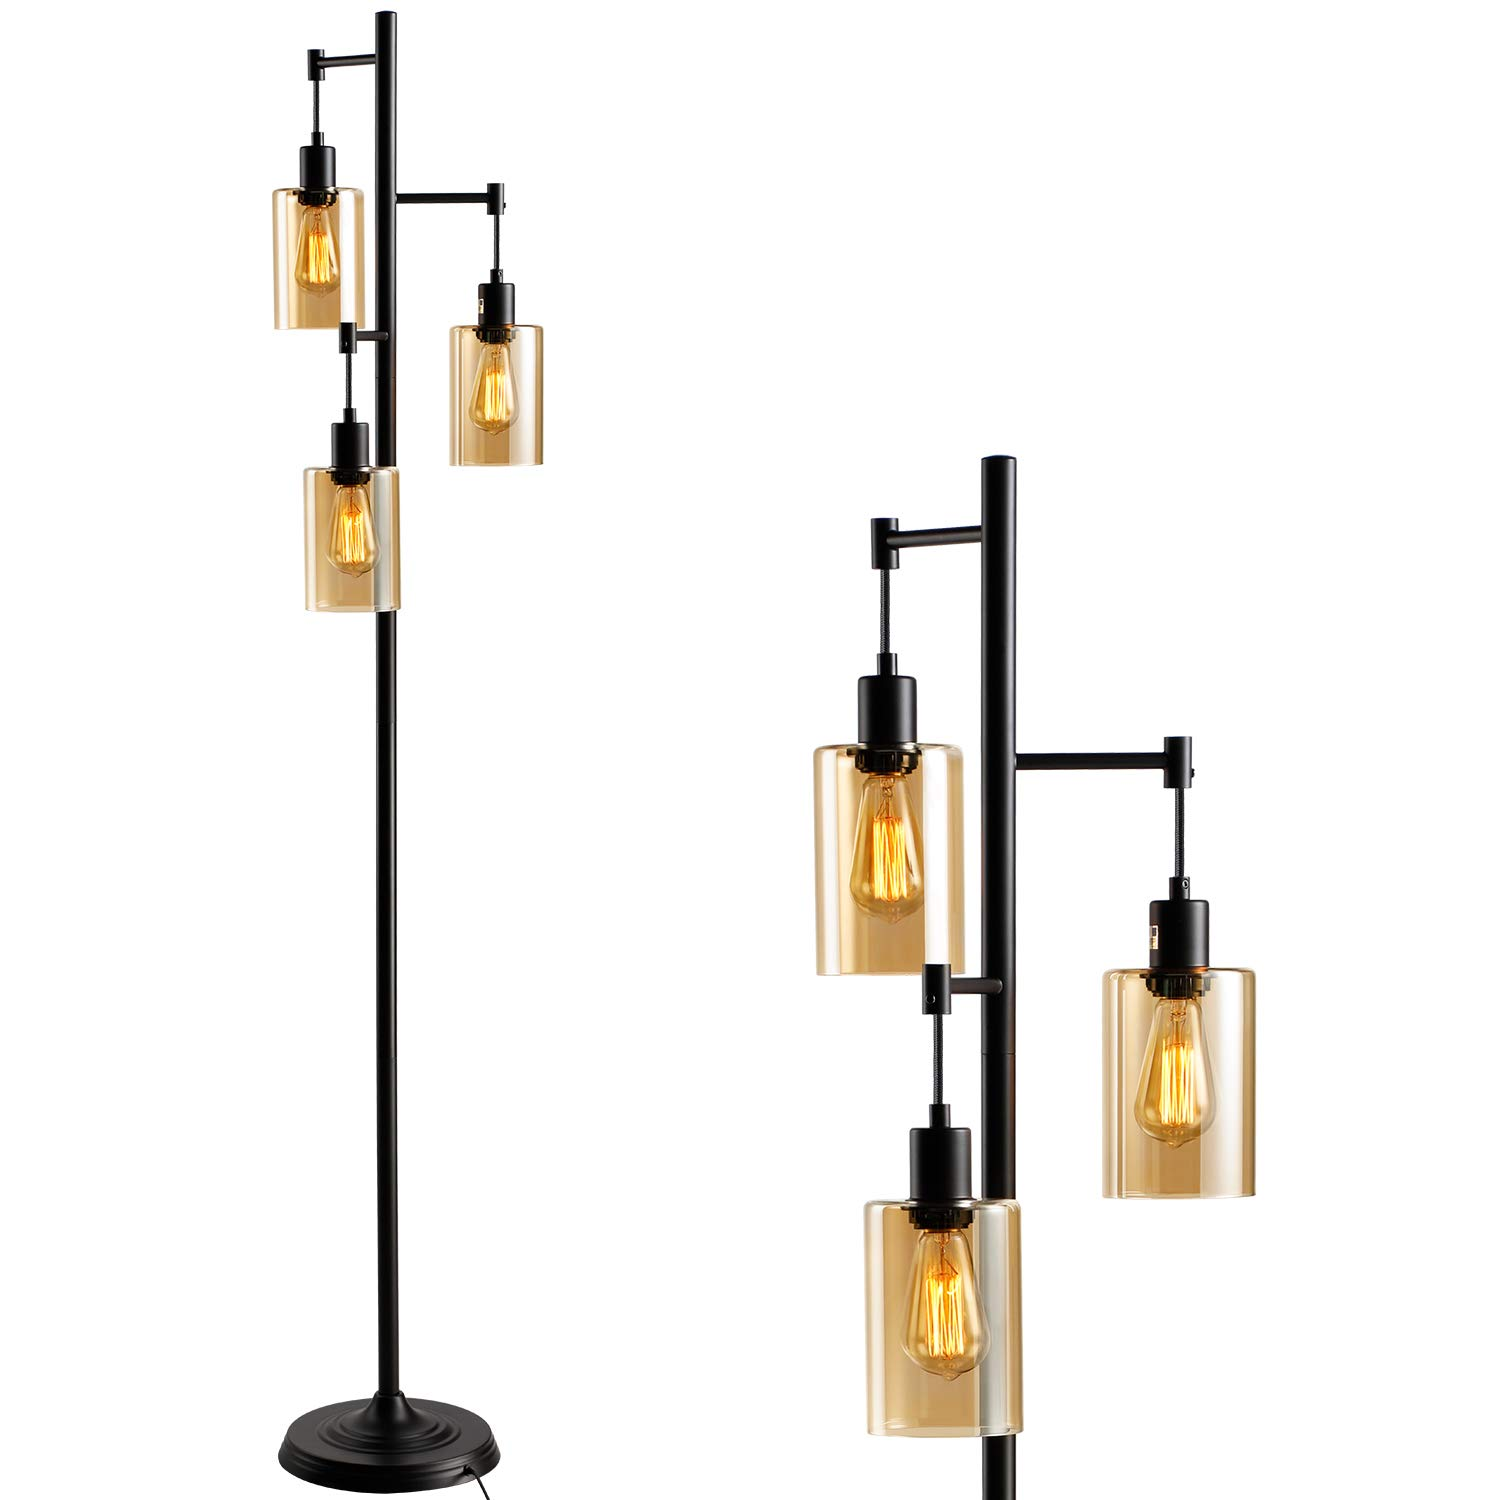 LEONLITE Amber Glass Track Tree Floor Lamp, 3-Head 40W Torchiere Lamp Fixture, 3 Bulbs Included, UL Listed, Retro Industrial Style, 2 Years Warranty, for Living Room, Study, Office, Bedroom